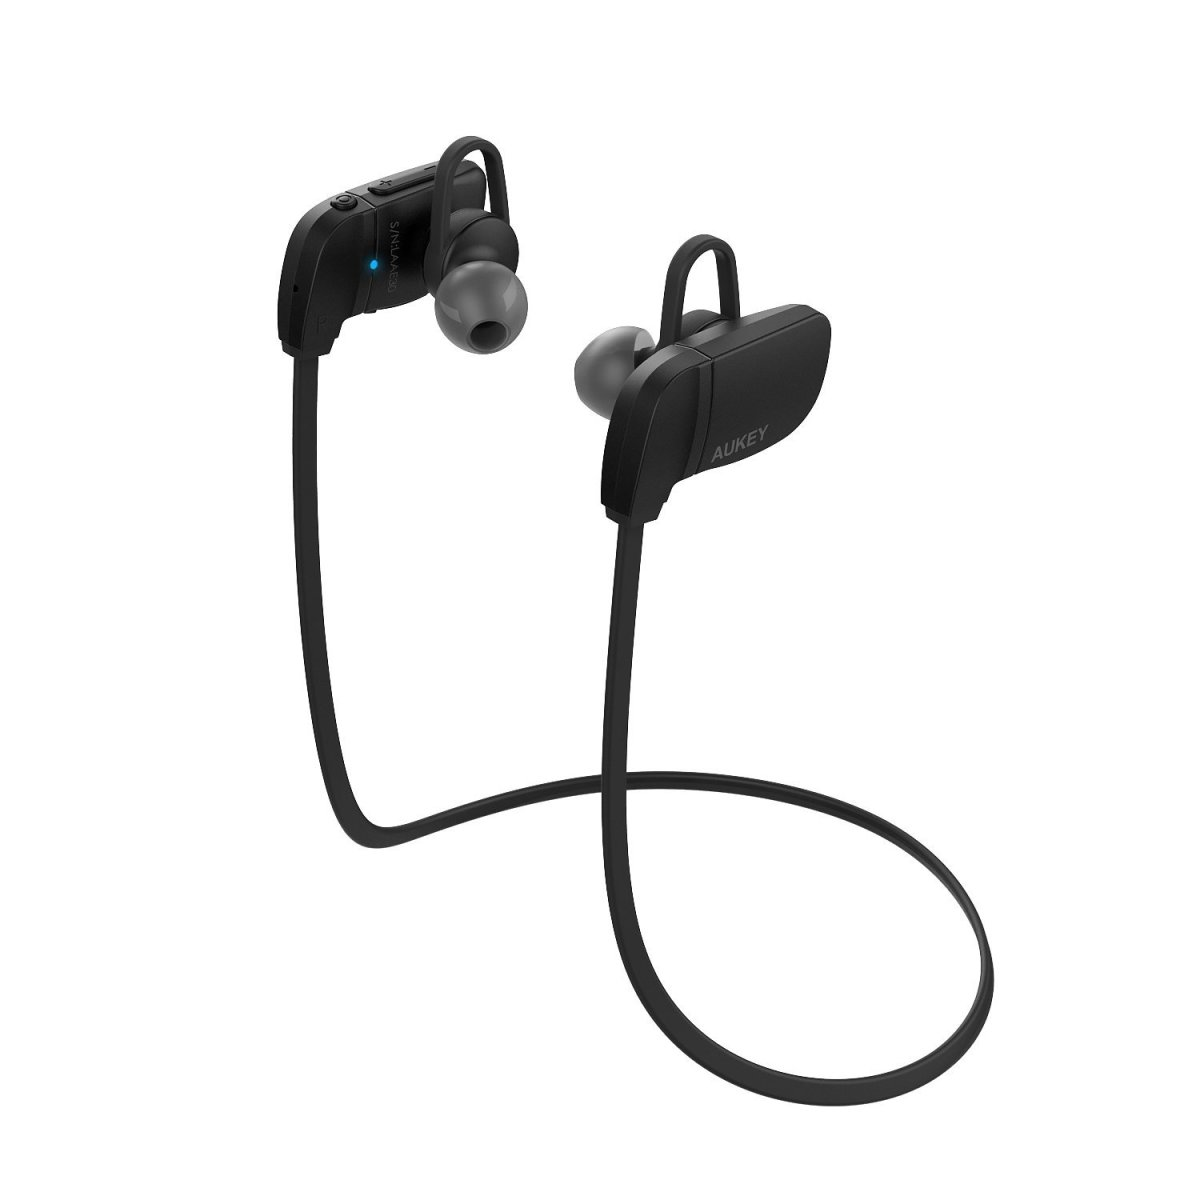 a-regular-guys-review-aukey-bluetooth-wireless-earbuds